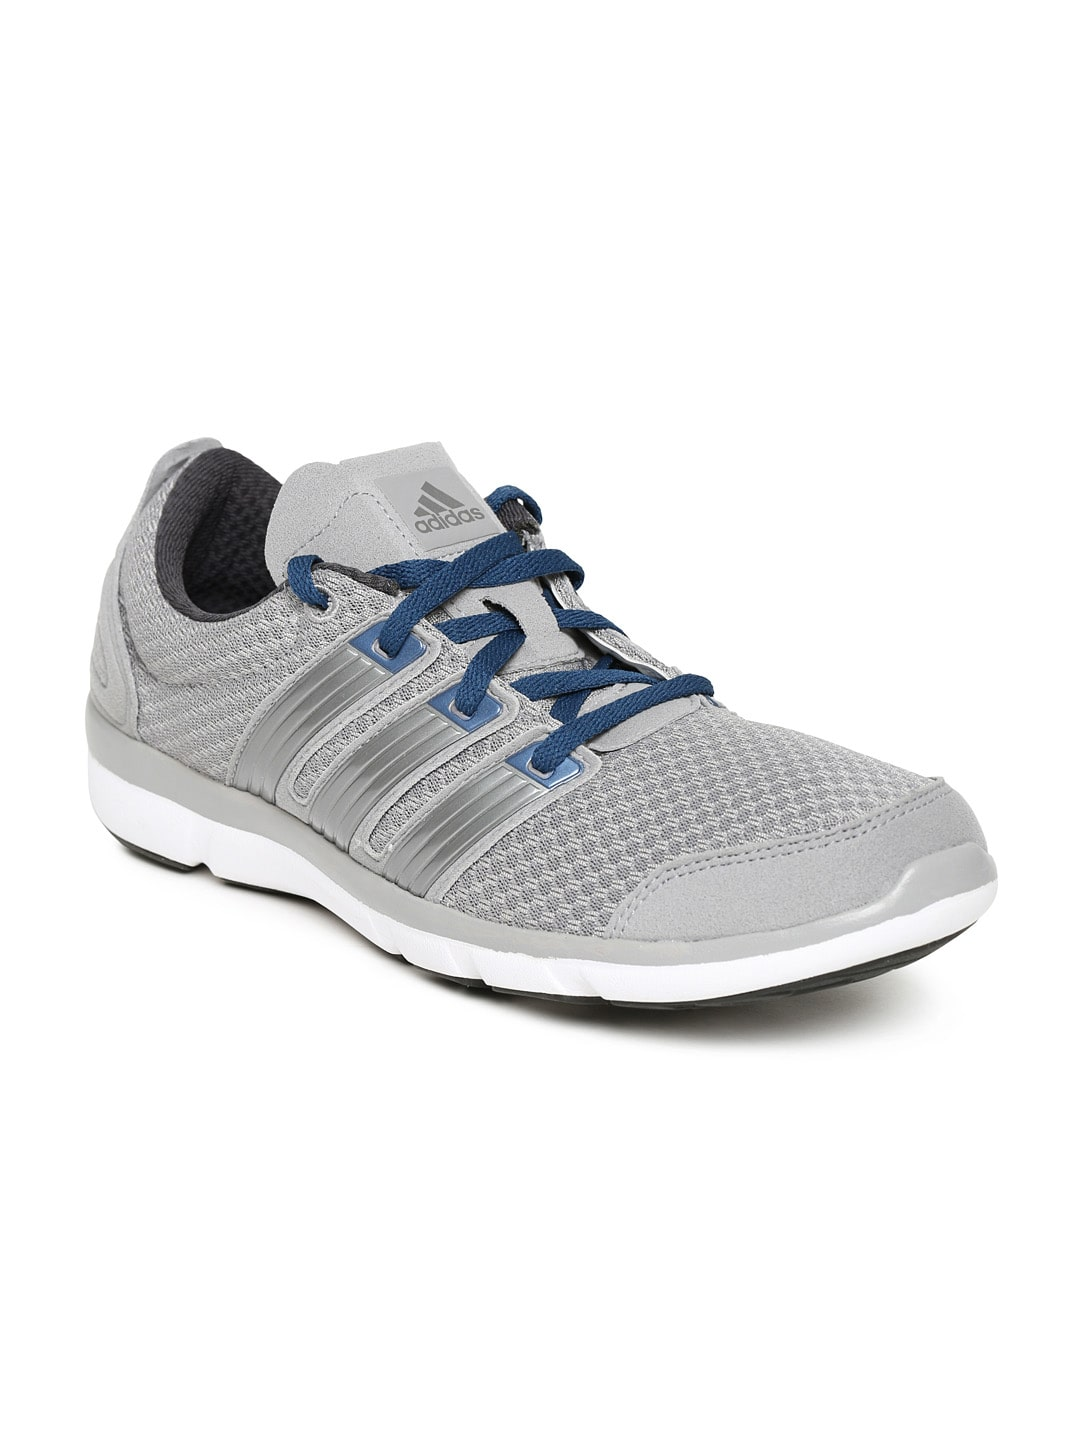 bd4d3eefe5fee Adidas m18212 Men Grey Element Soul 2 M Running Shoes- Price in India